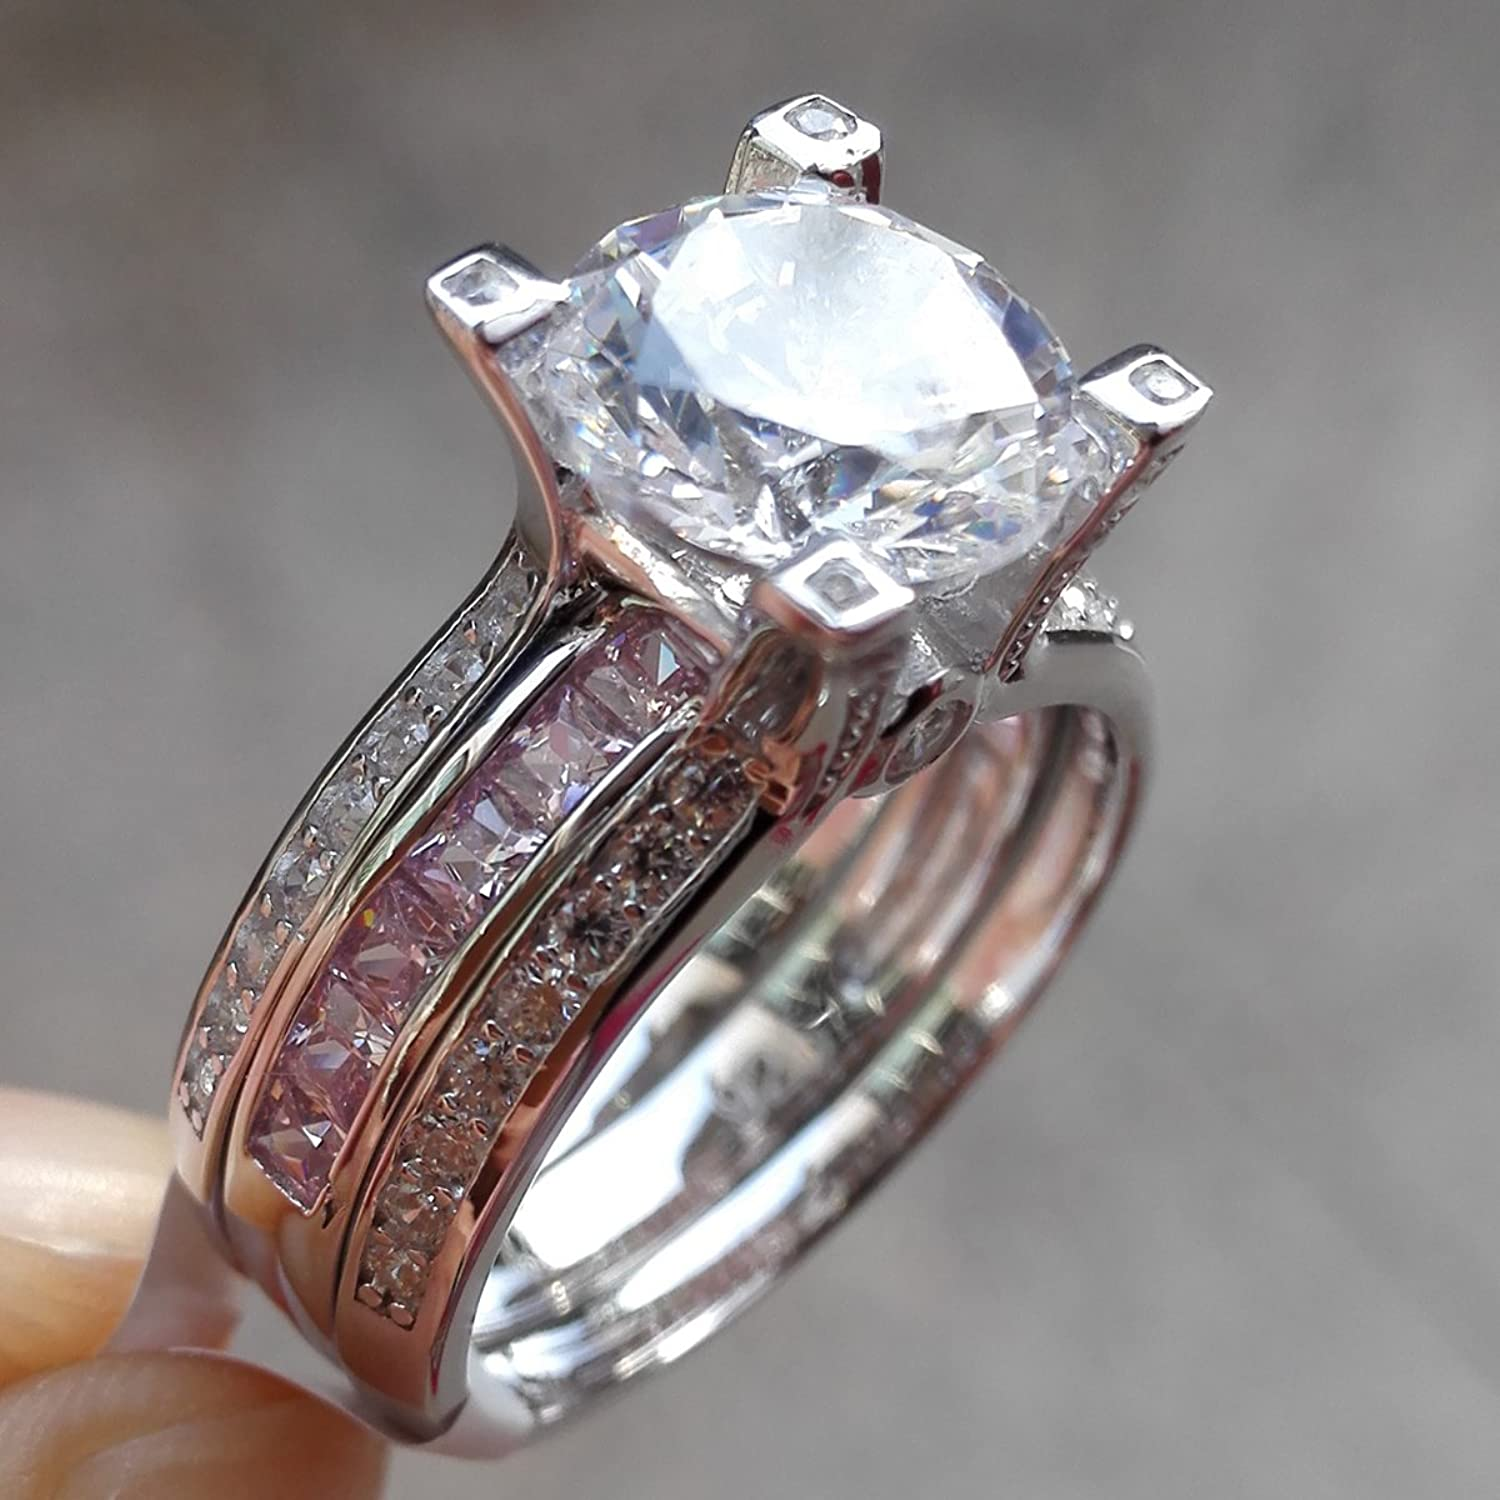 stone a center carat top products rings jewelry gia hole diamond ring wedding ct front jackson pink collections